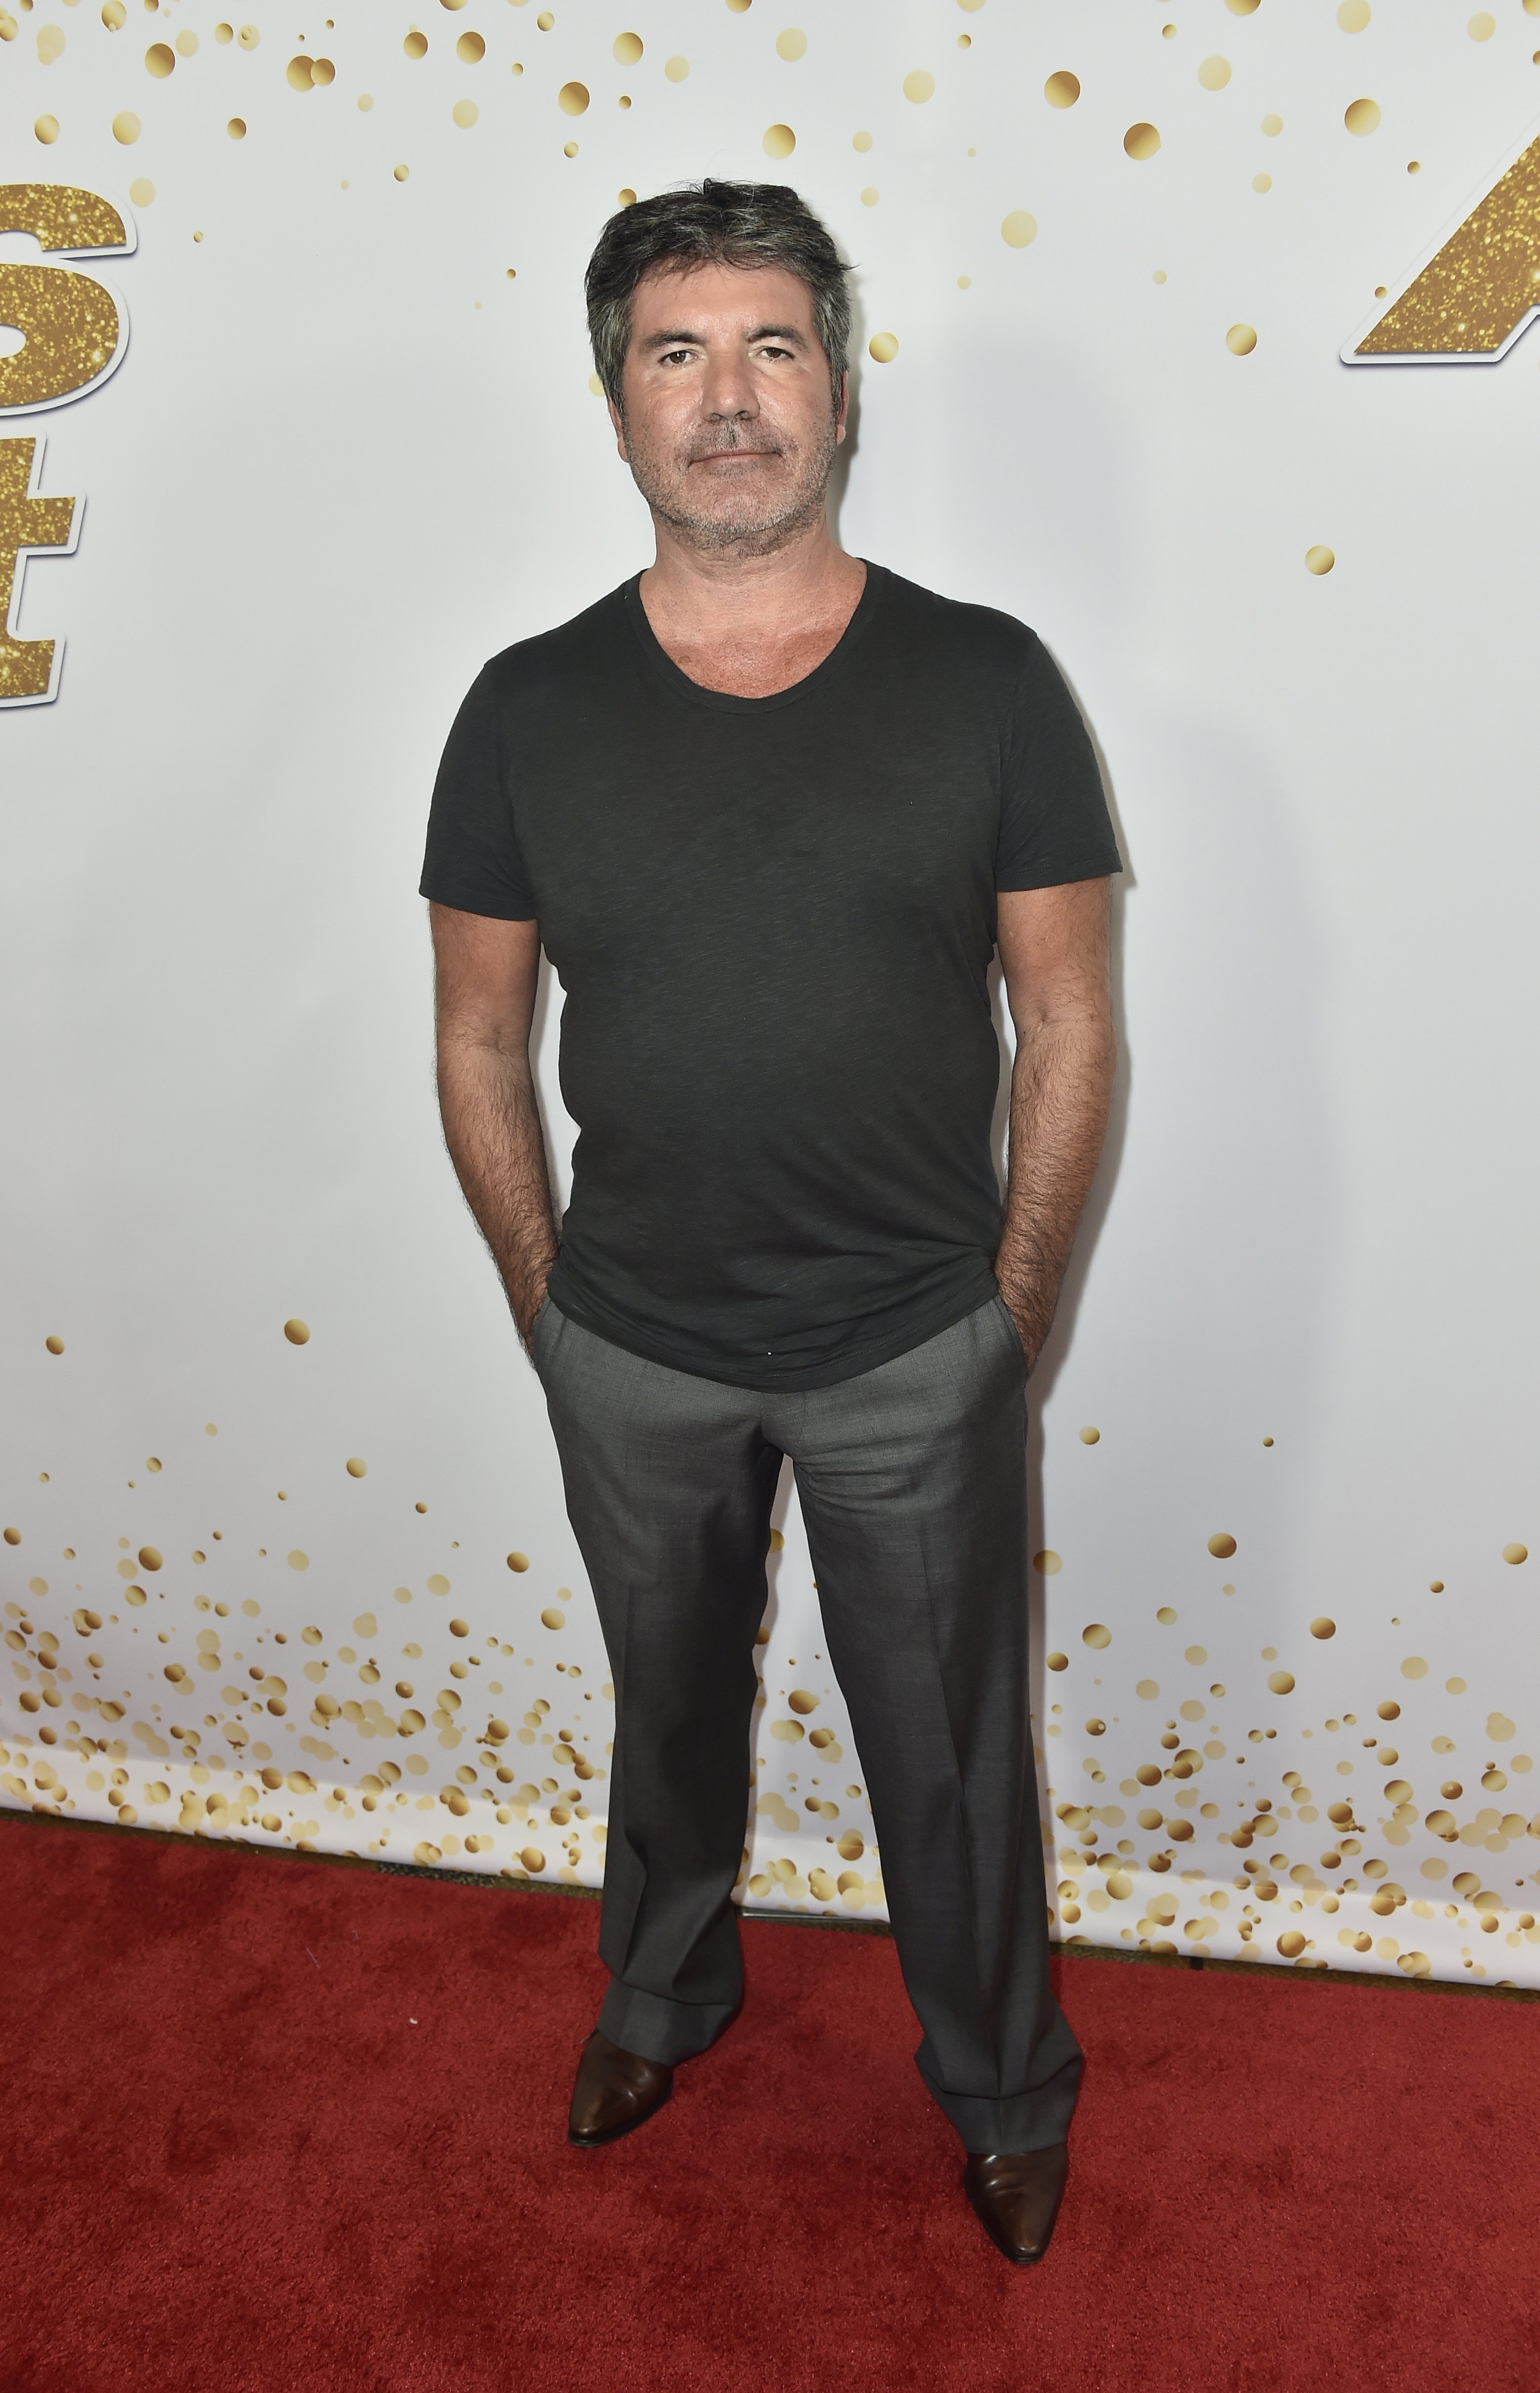 """Simon Cowell at an event for """"America's Got Talent"""" 